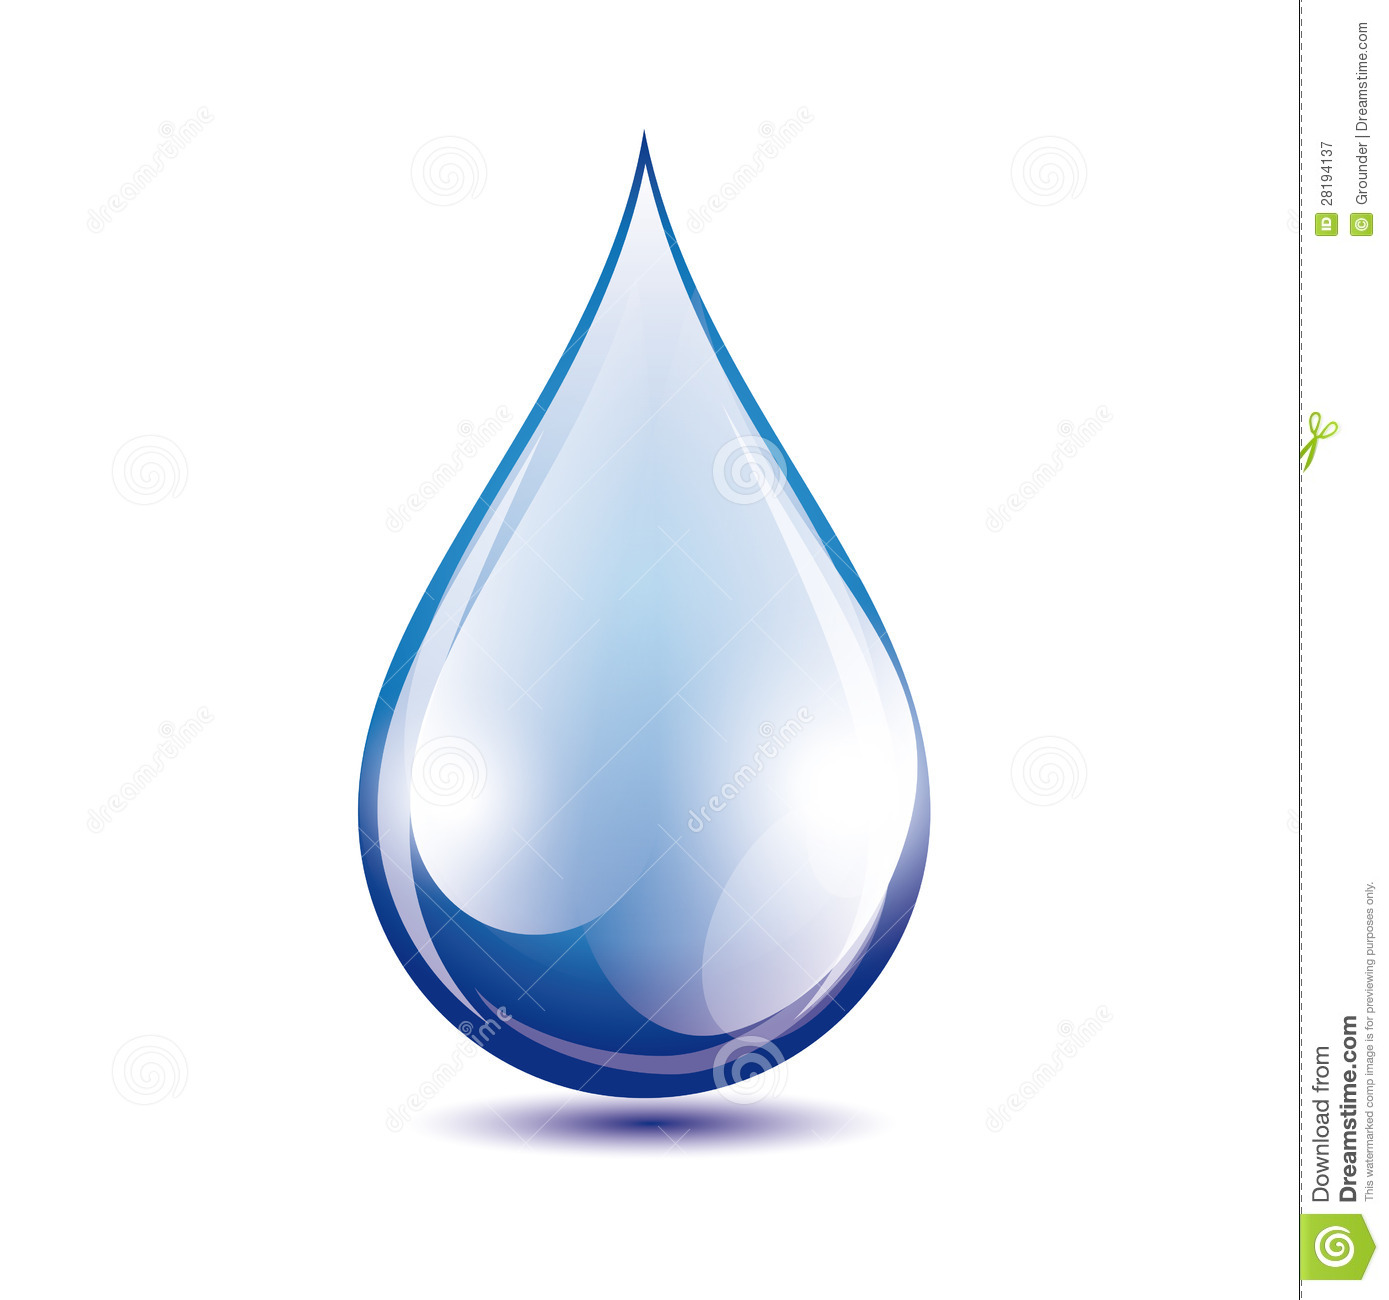 Water Drop Vector Royalty Free Stock Photography Image